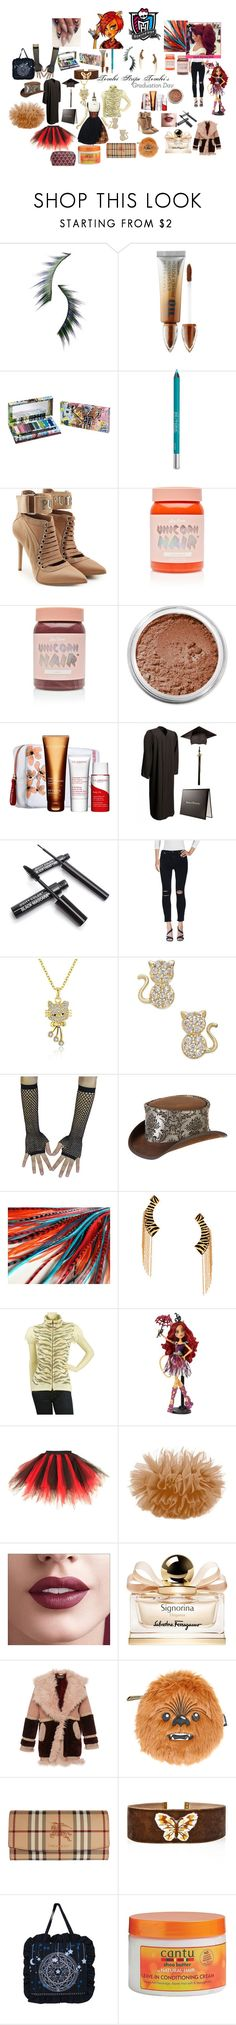 """Monster High: Toralei's Graduation Day"" by mimi-world on Polyvore featuring Beauty Is Life, Urban Decay, Puma, Lime Crime, Bare Escentuals, Clarins, J Brand, Overland Sheepskin Co., Maria Francesca Pepe and MARC CAIN"